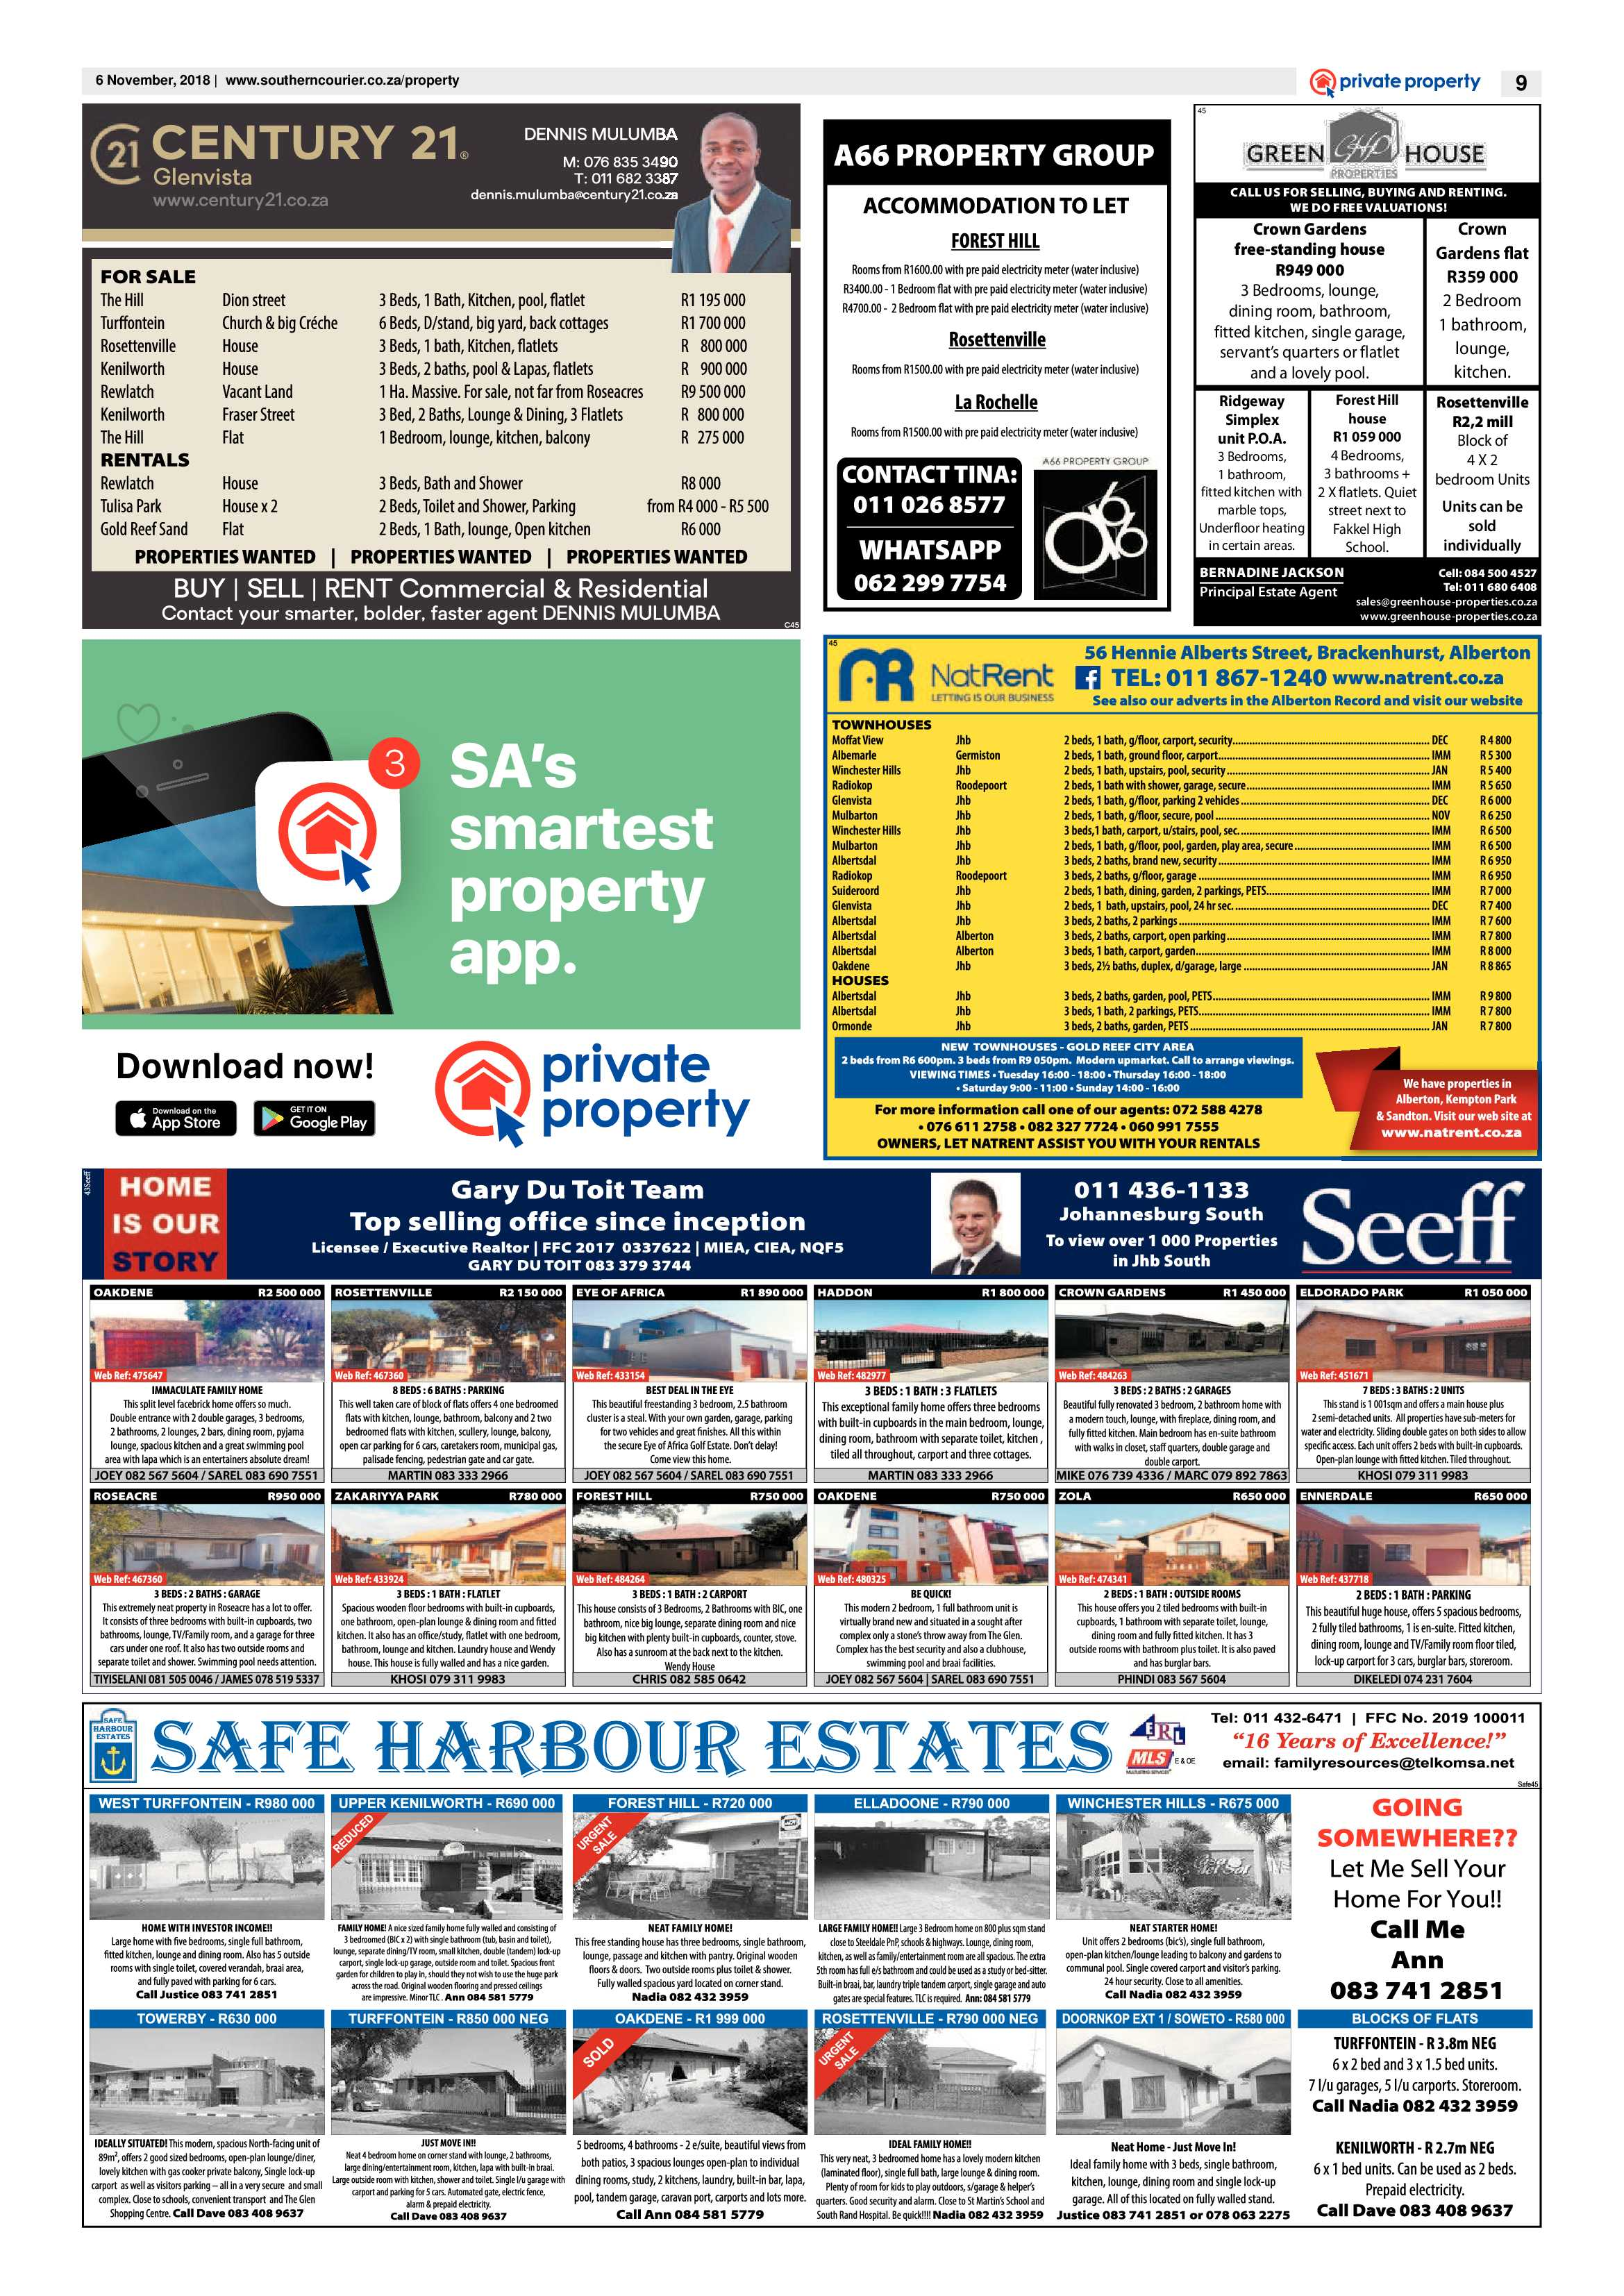 southern-courier-06-november-2018-epapers-page-9